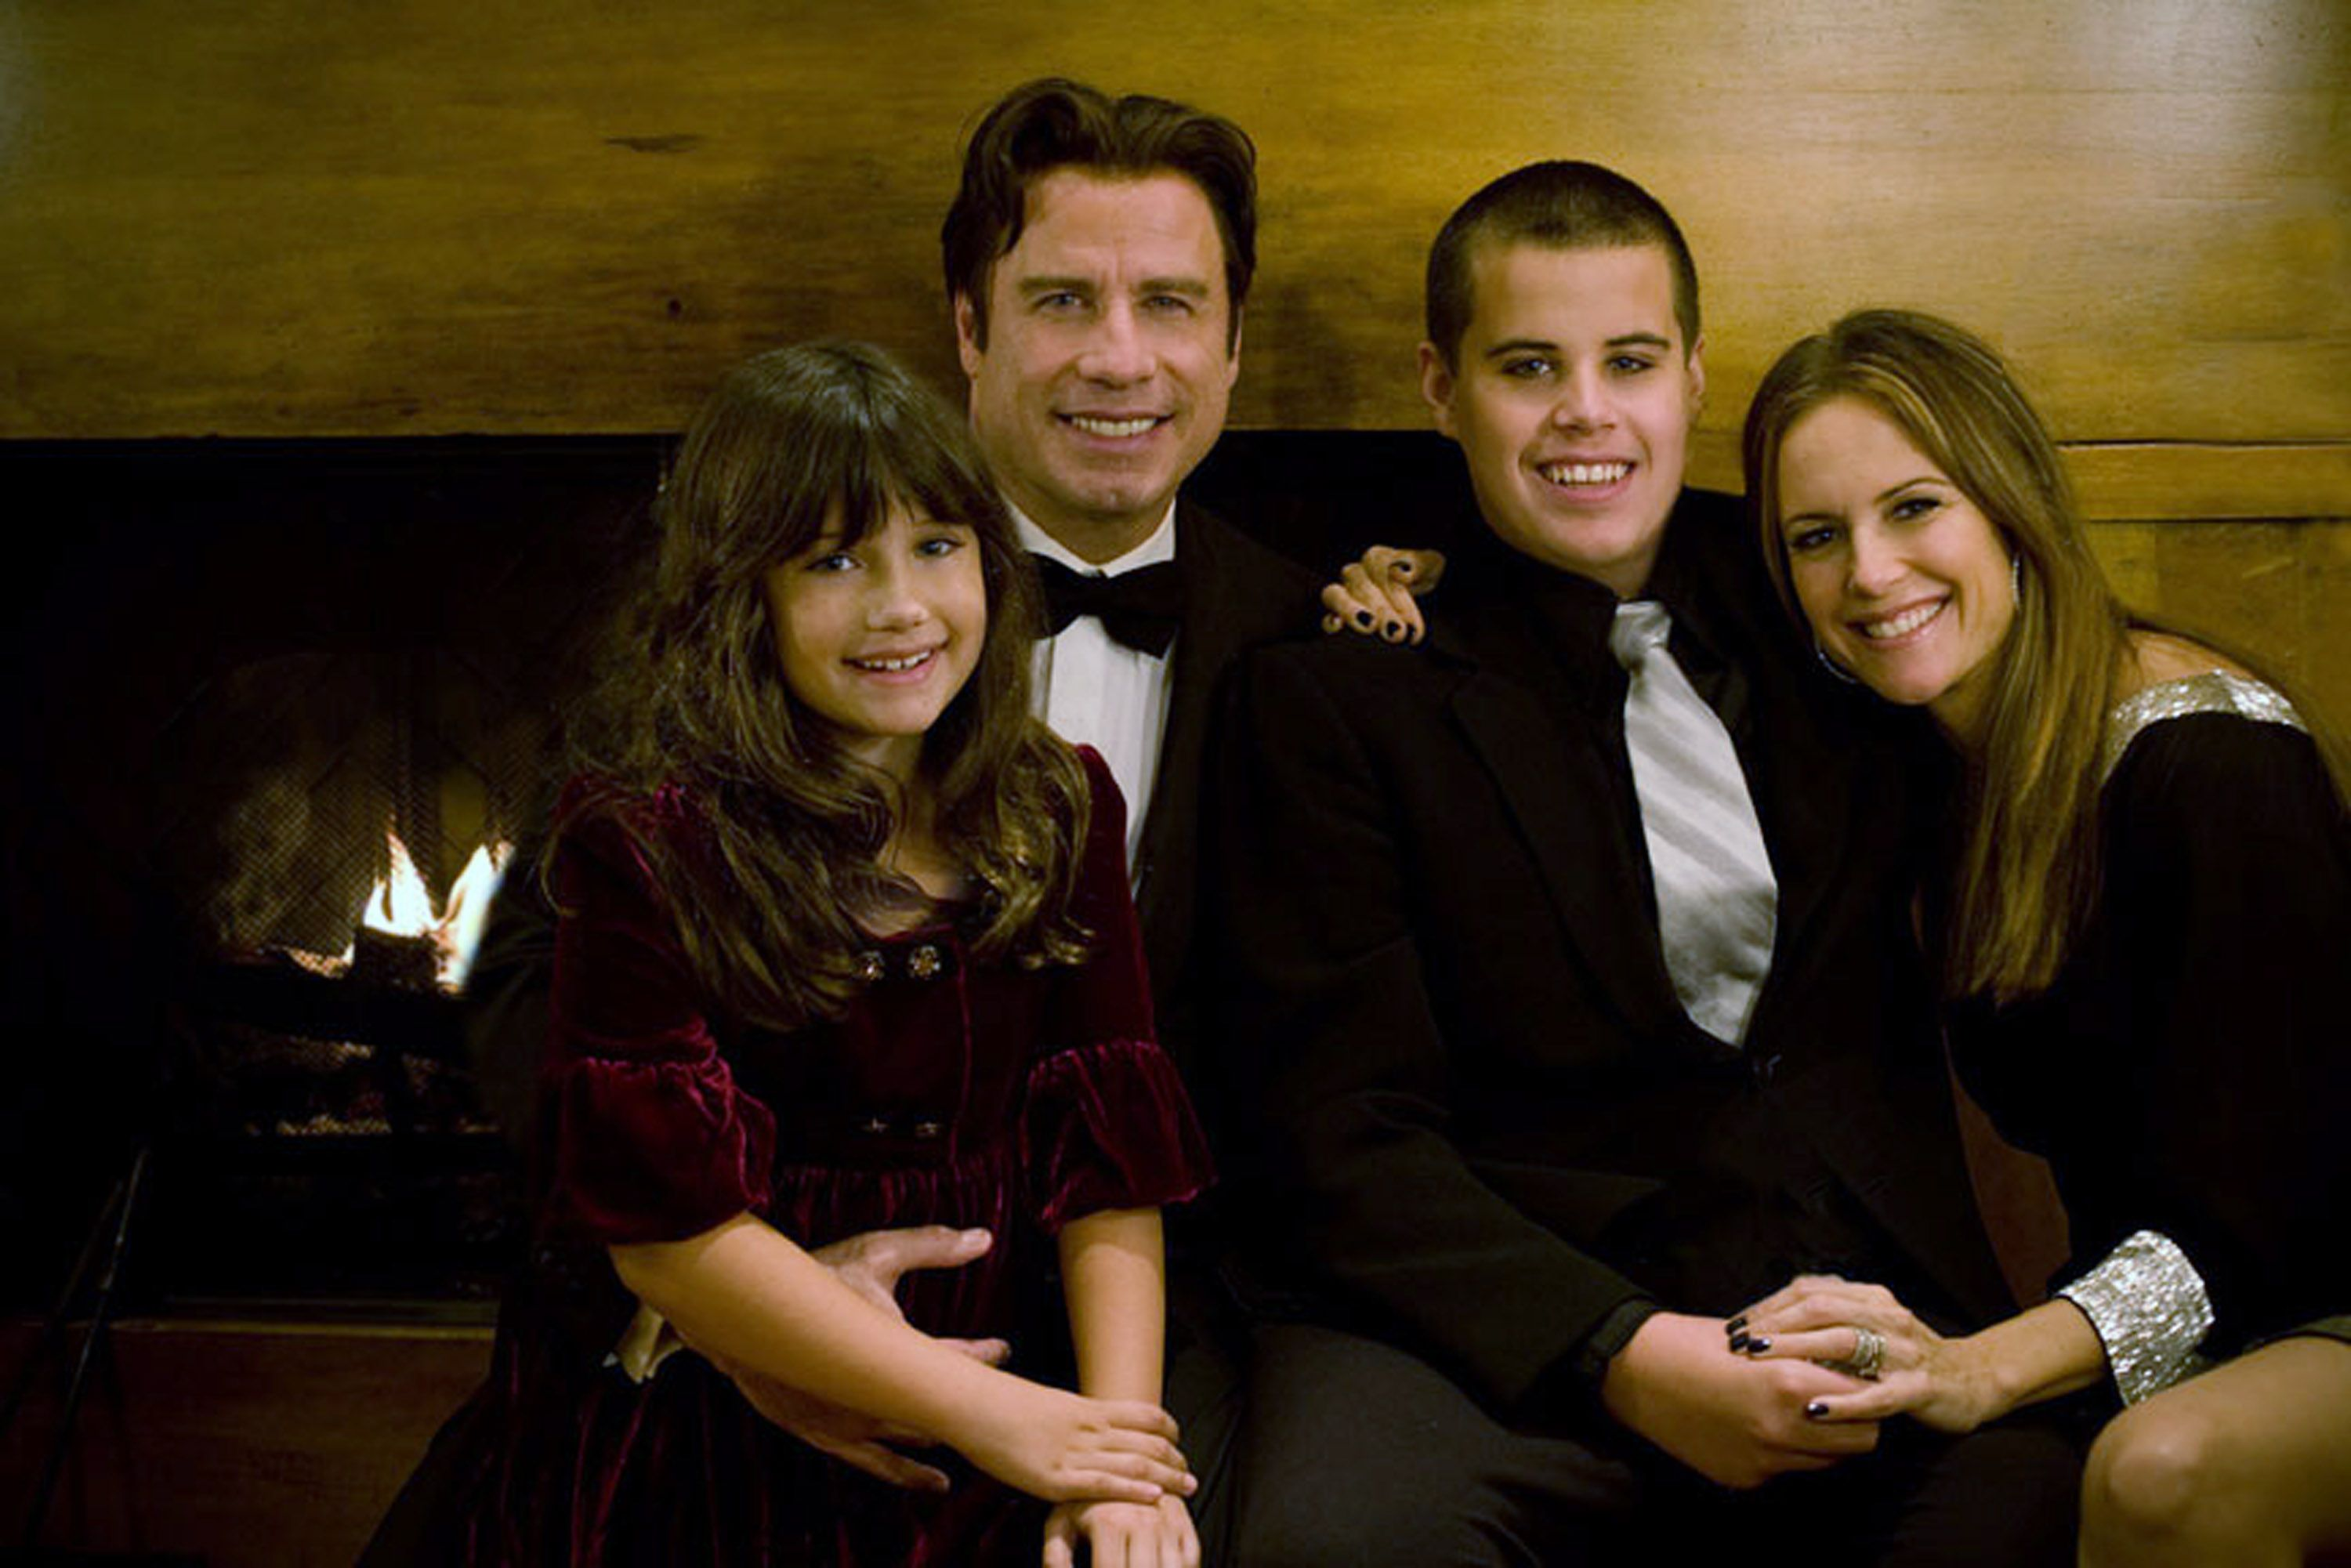 John Travolta and Kelly Preston with their children Jett Travolta and Ella Bleu Travolta/Photo:Getty Images